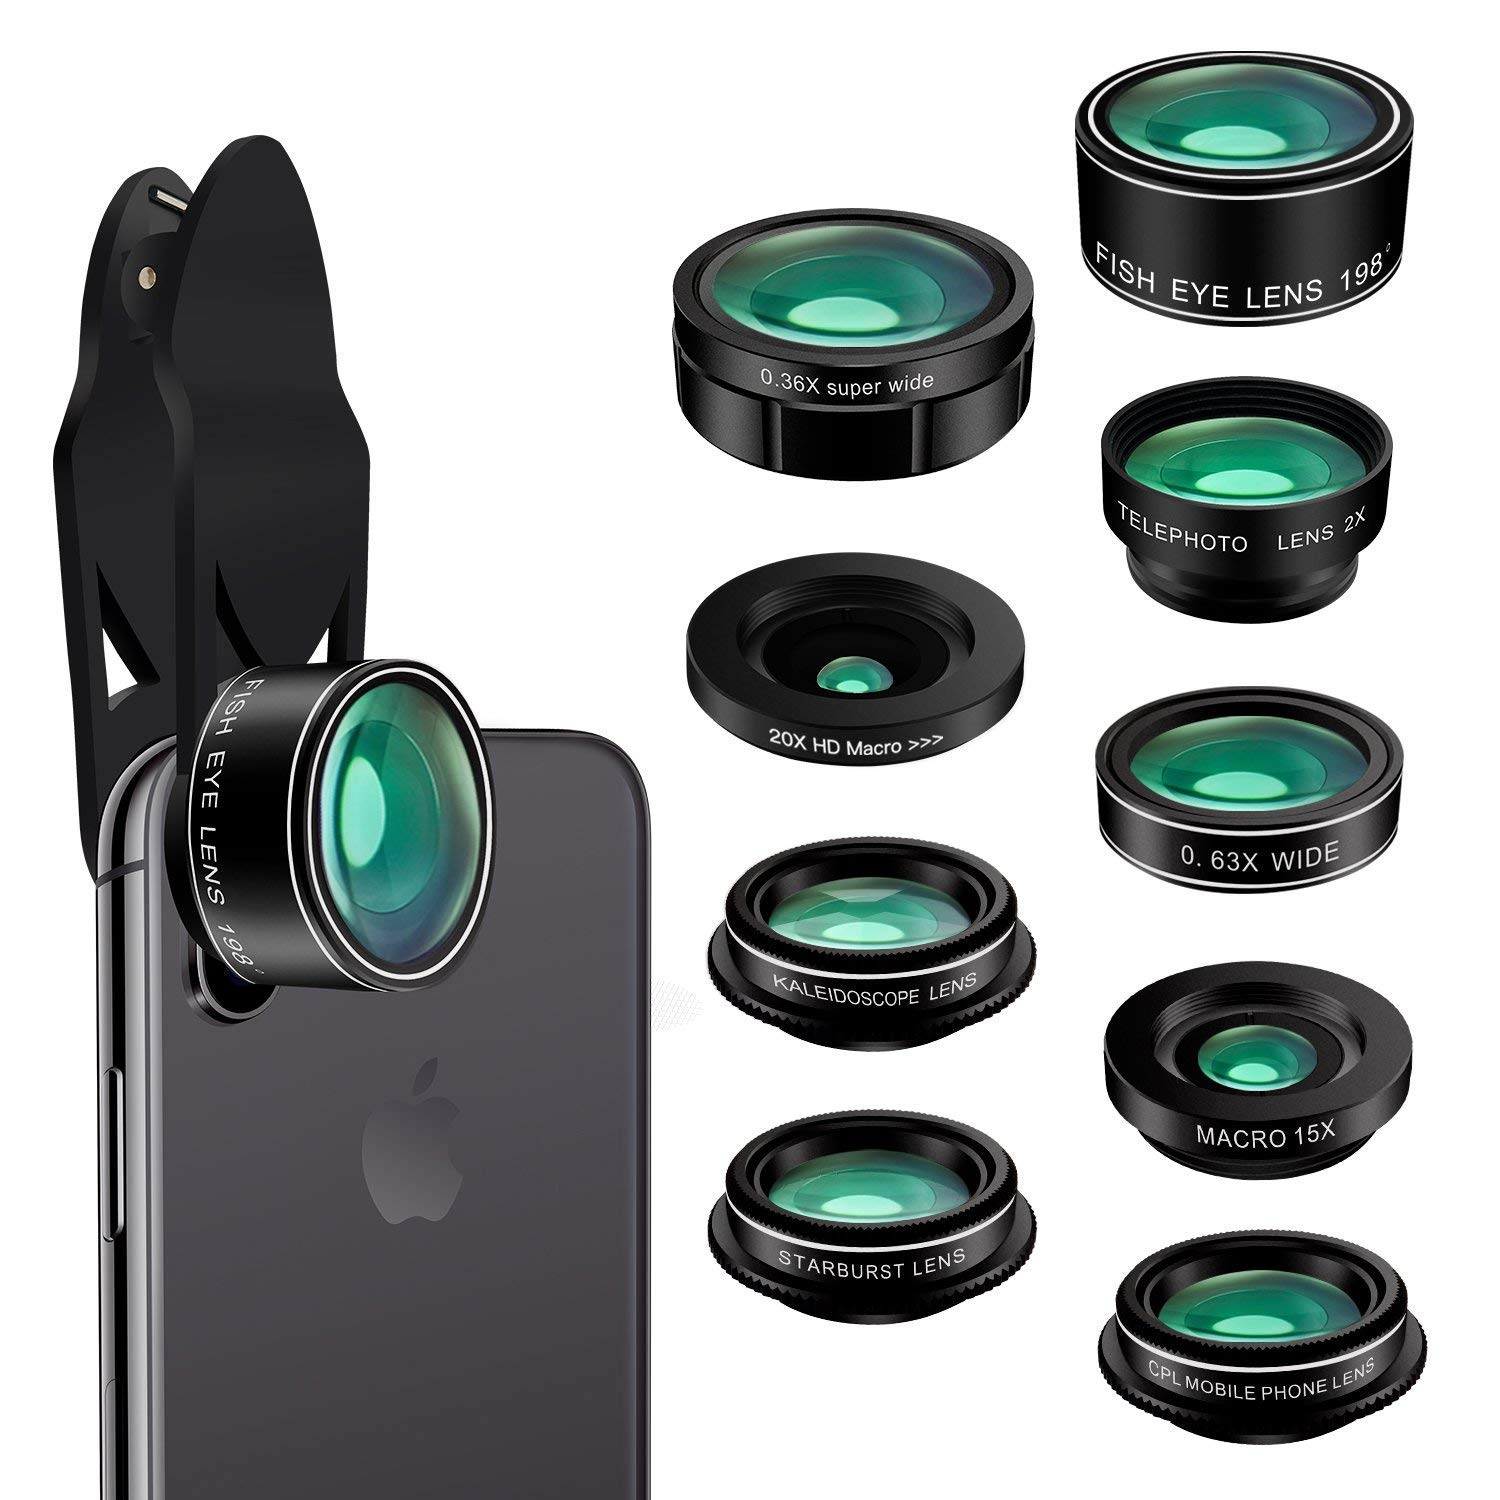 Cell Phone Camera Lens, 9 in 1 Camera Lens Kit Macro Lens + 198° Fisheye Lens + Wide Angle Lens + CPL + Kaleidoscope + Starburst Lens Compatible iPhone X/8/7/7 Plus/6s/6s & Samsung & Smartphones